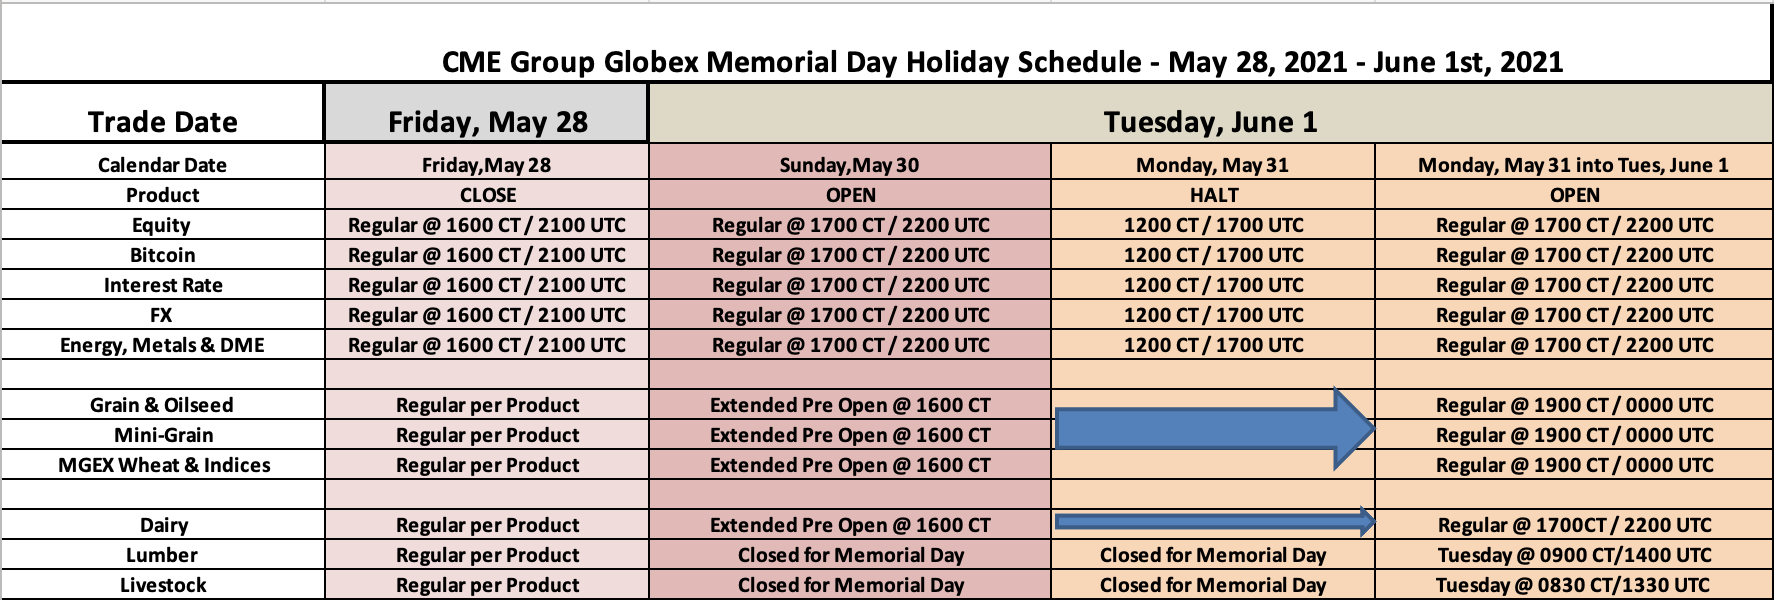 Memorial Day (US) & Spring Bank Holiday (UK) - Holiday Schedule - 2021